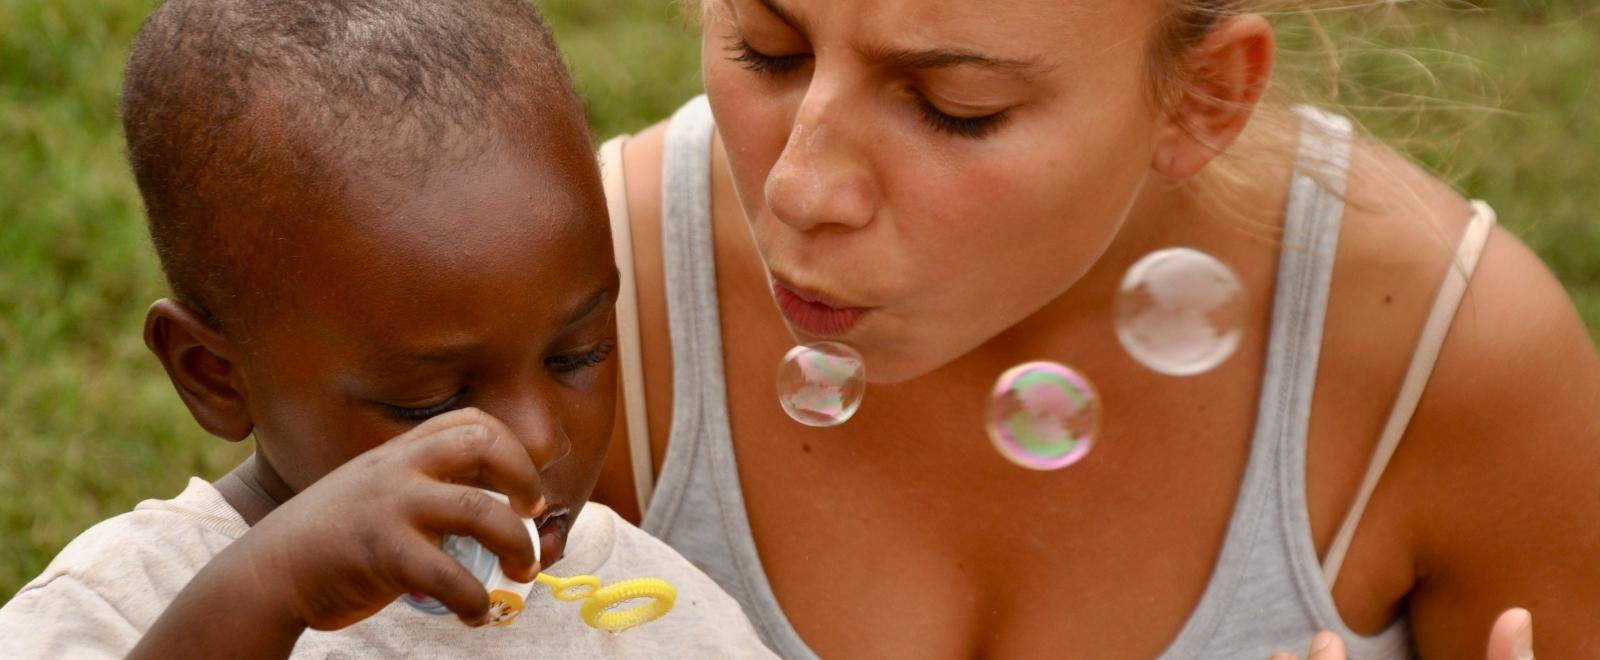 Childcare volunteer blows bubbles with a child in Ghana